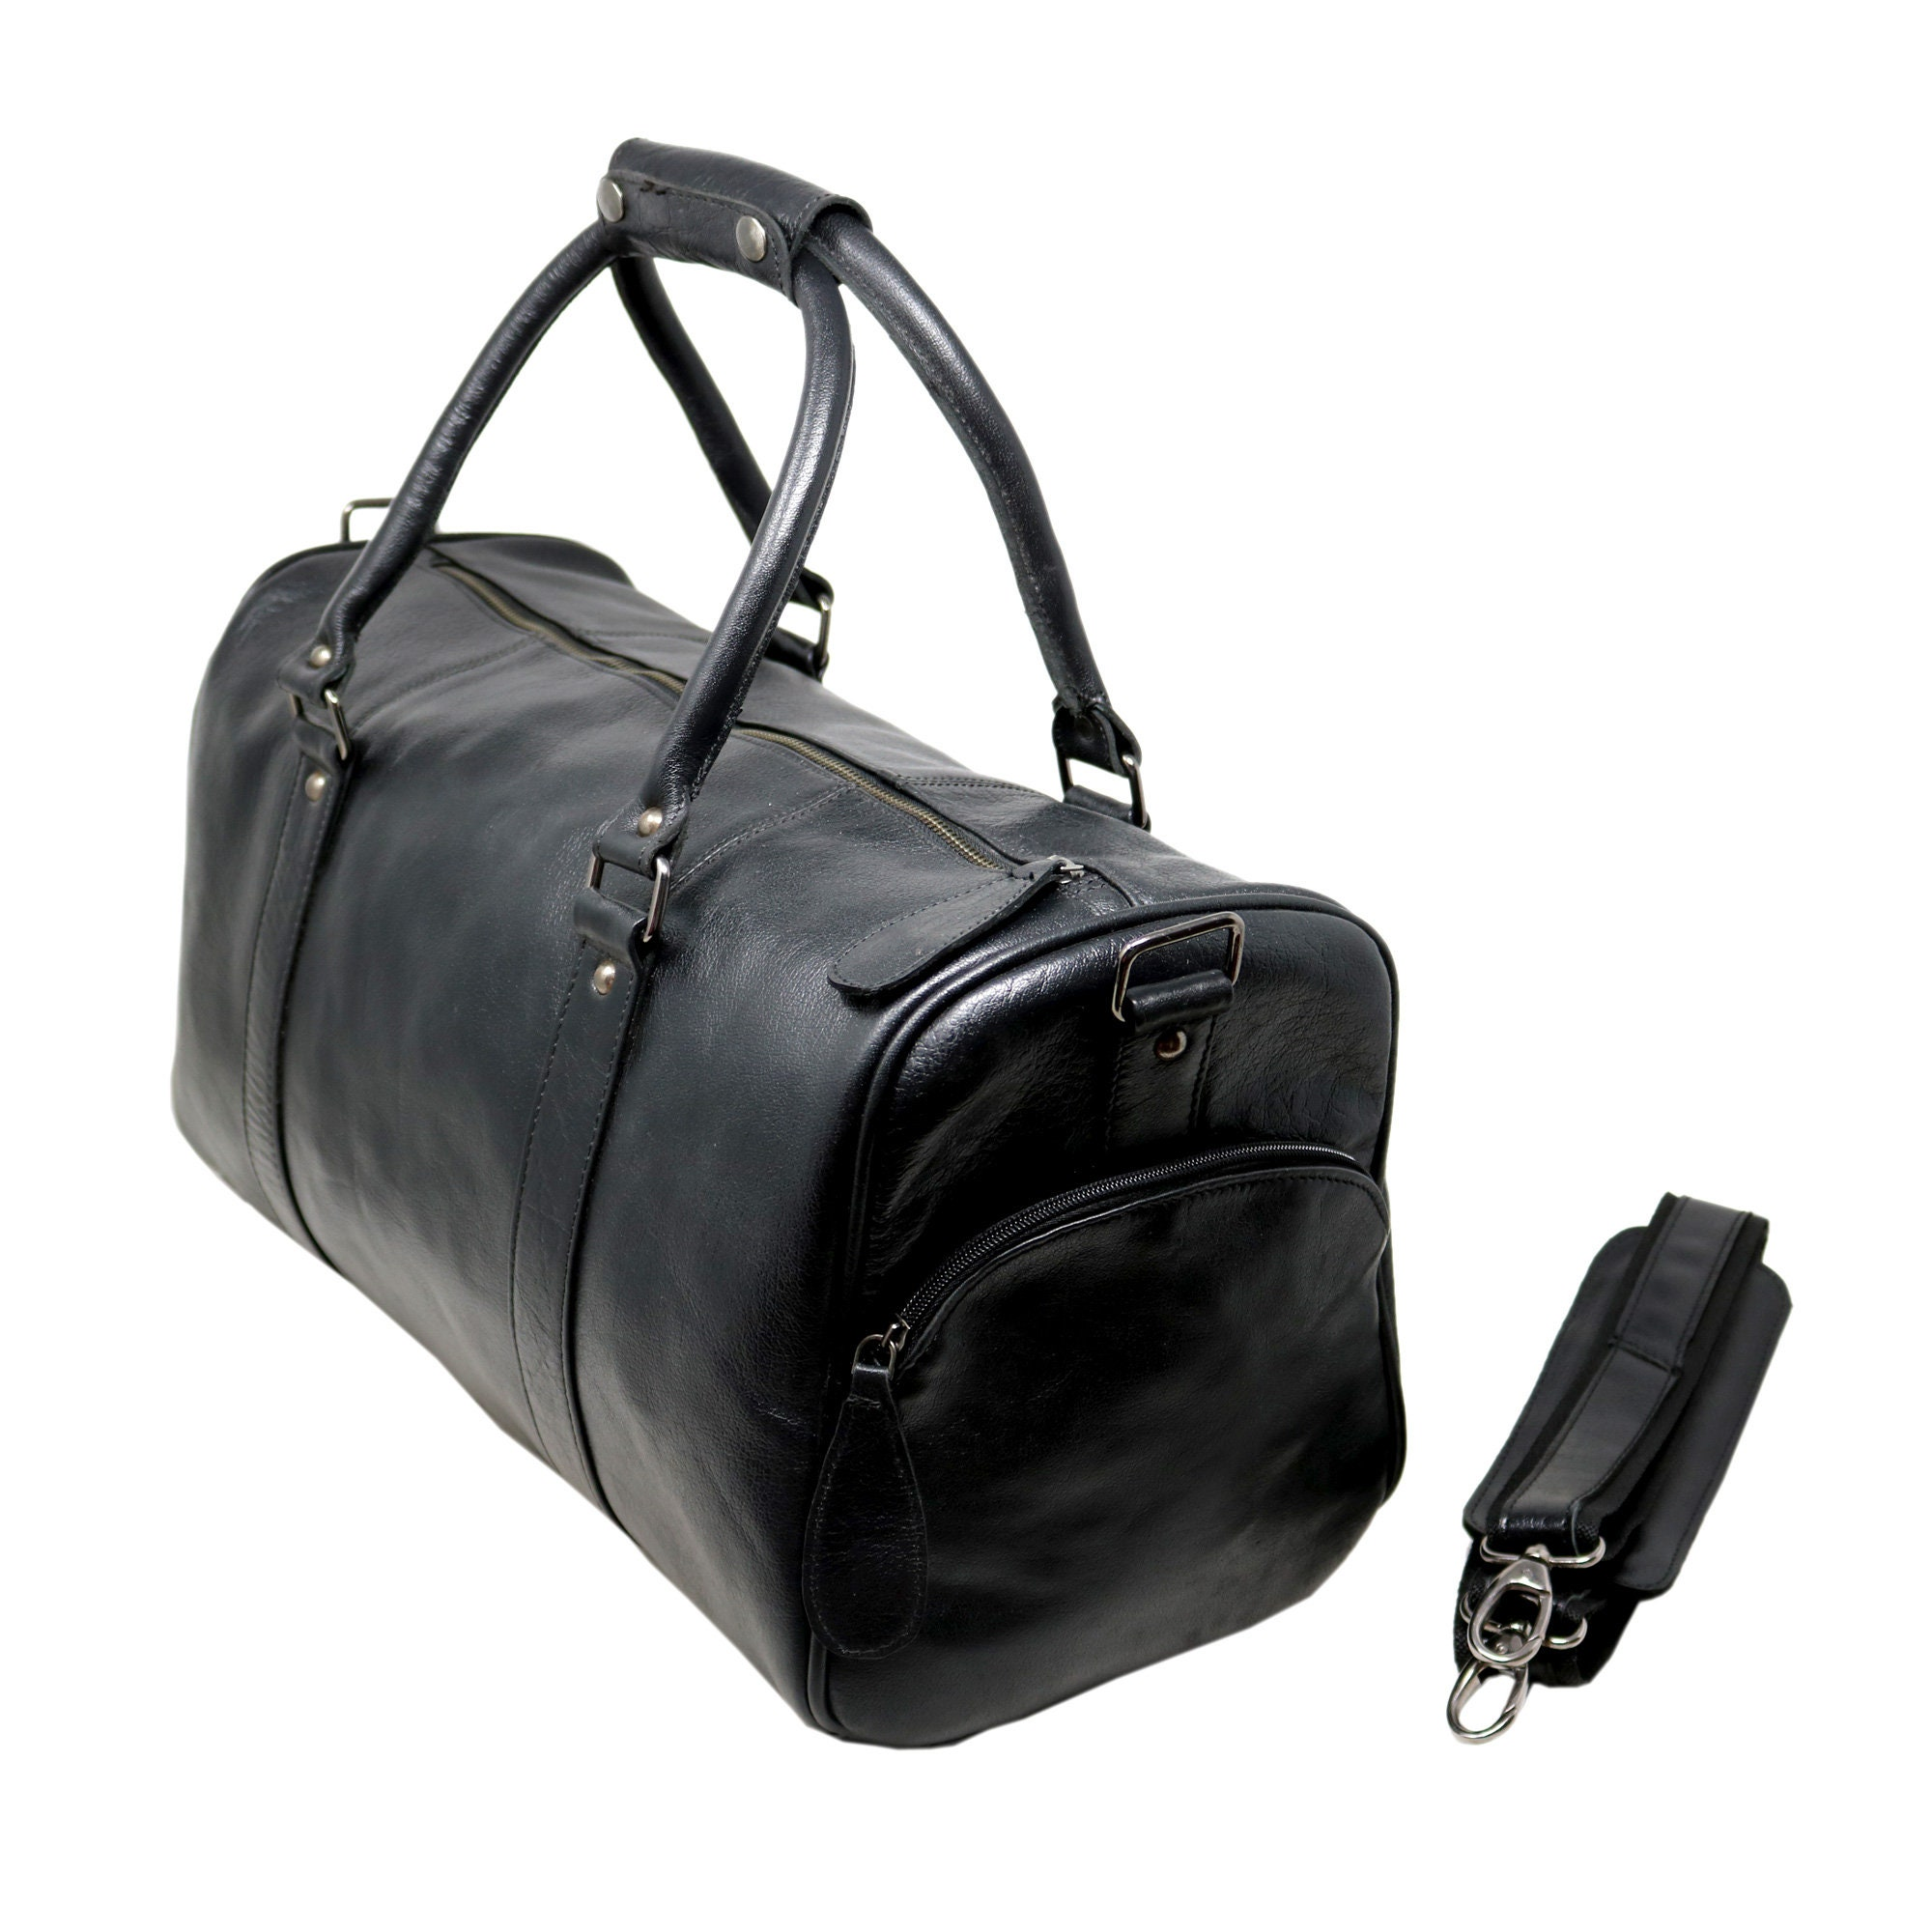 40% Off Personalize 18 Genuine Leather Duffel Bag  aa07a6127e371